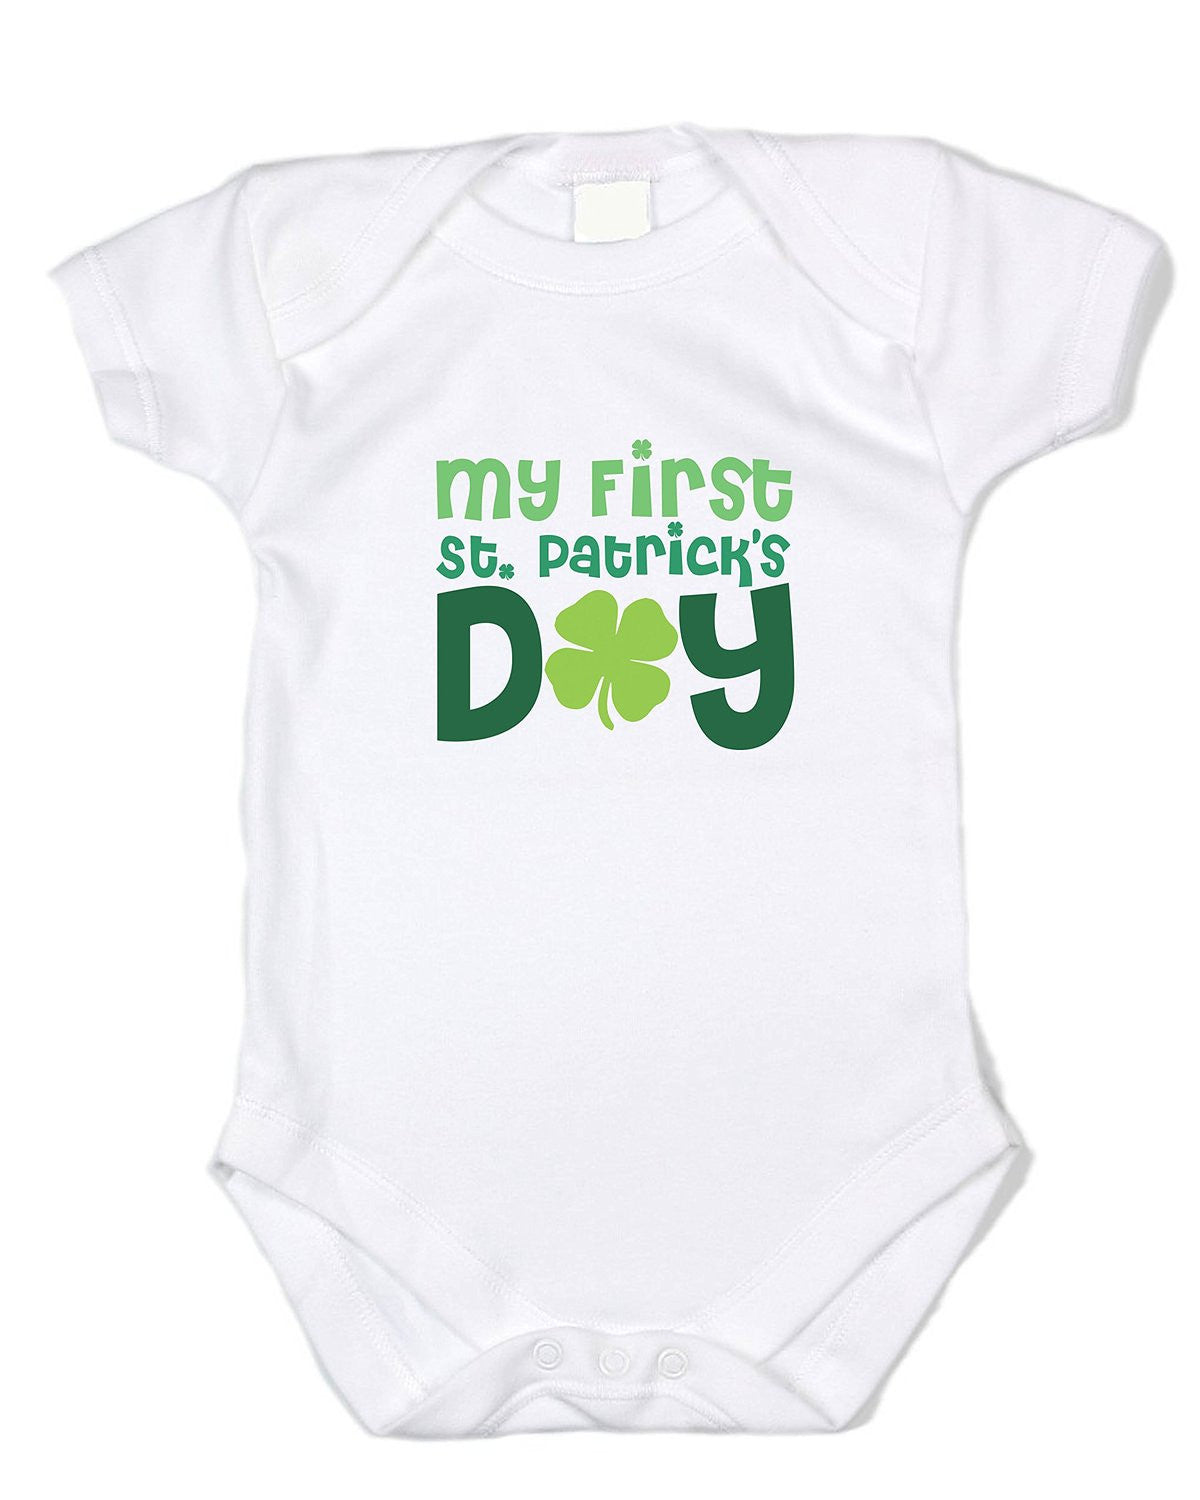 """My First St. Patrick's Day"" White Onesie - St. Patty's Day Kids Clothes"